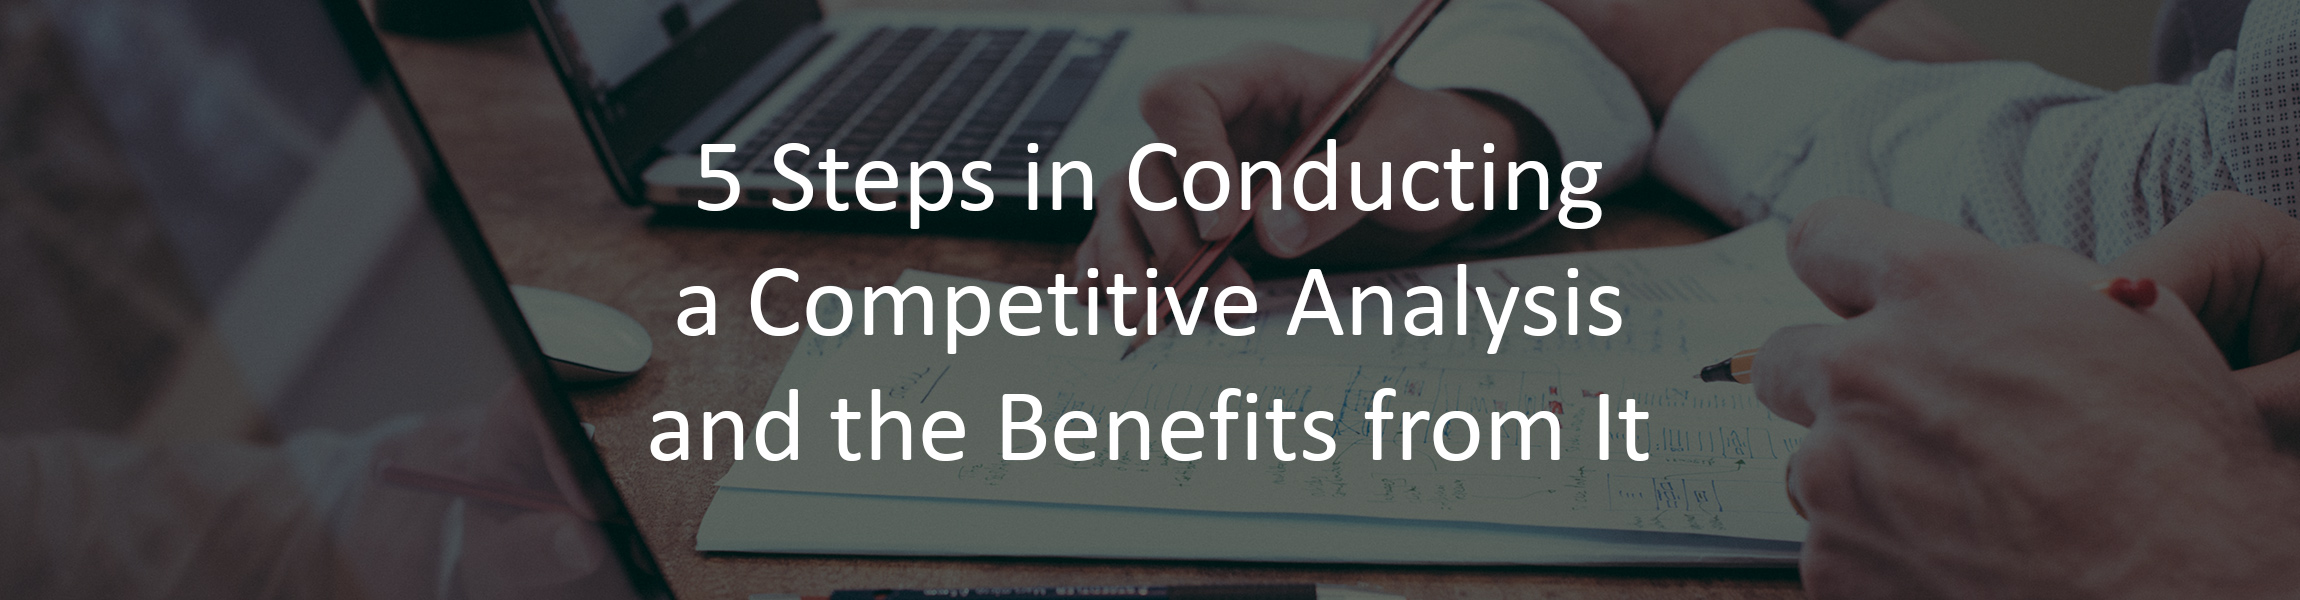 5 Steps in Conducting a Competitive Analysis and the Benefits from It